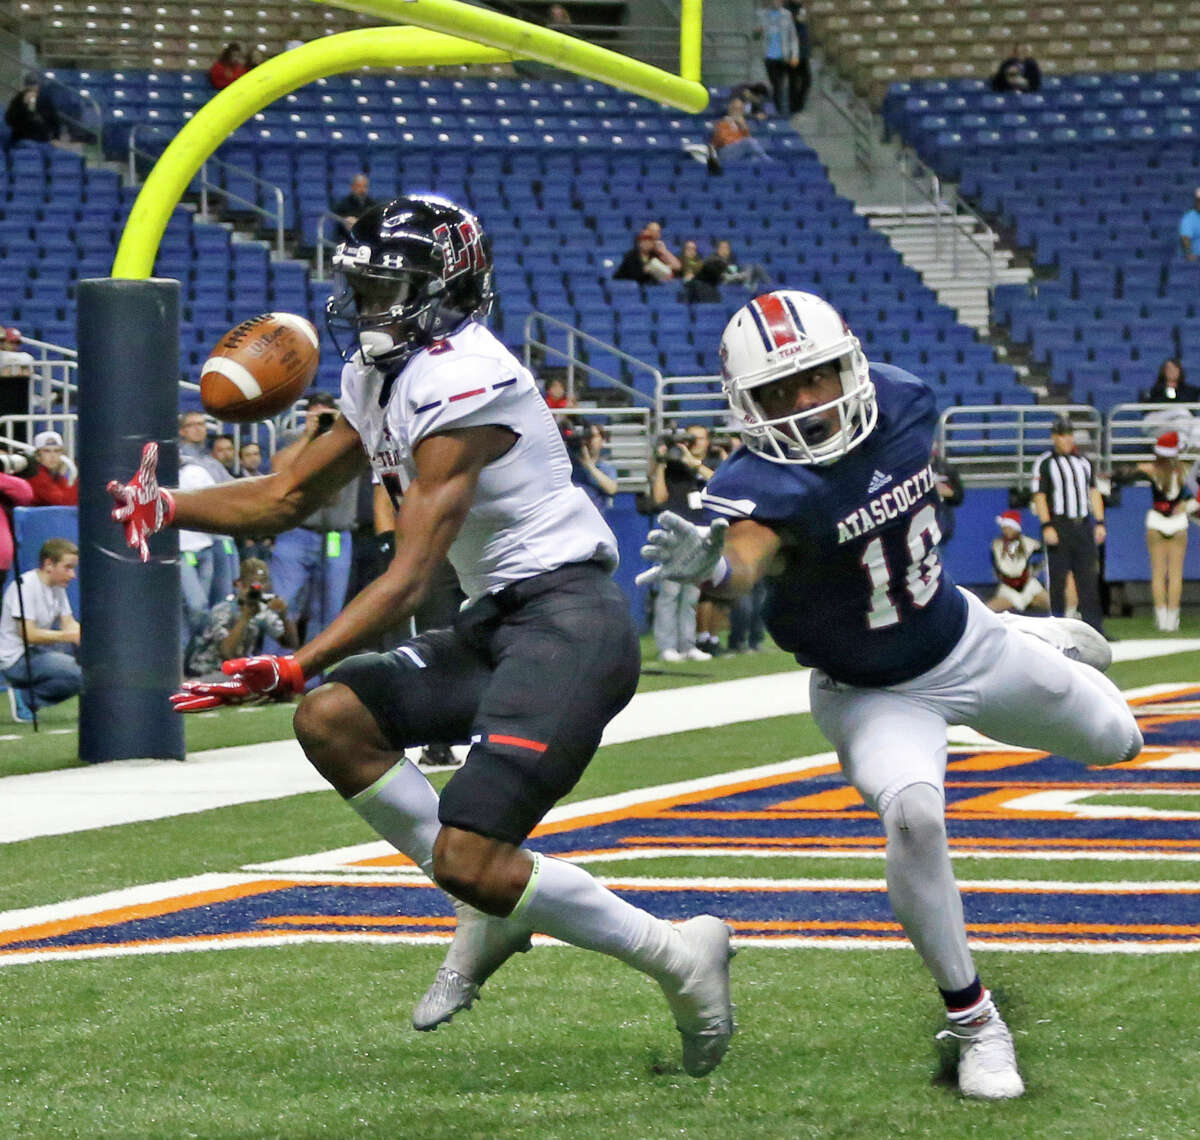 Lake Travis' Garrett Wilson hauls in a touchdown pass in front of Atascocita's Justen Campbell, giving the Cavaliers a 35-7 lead just before halftime Saturday.